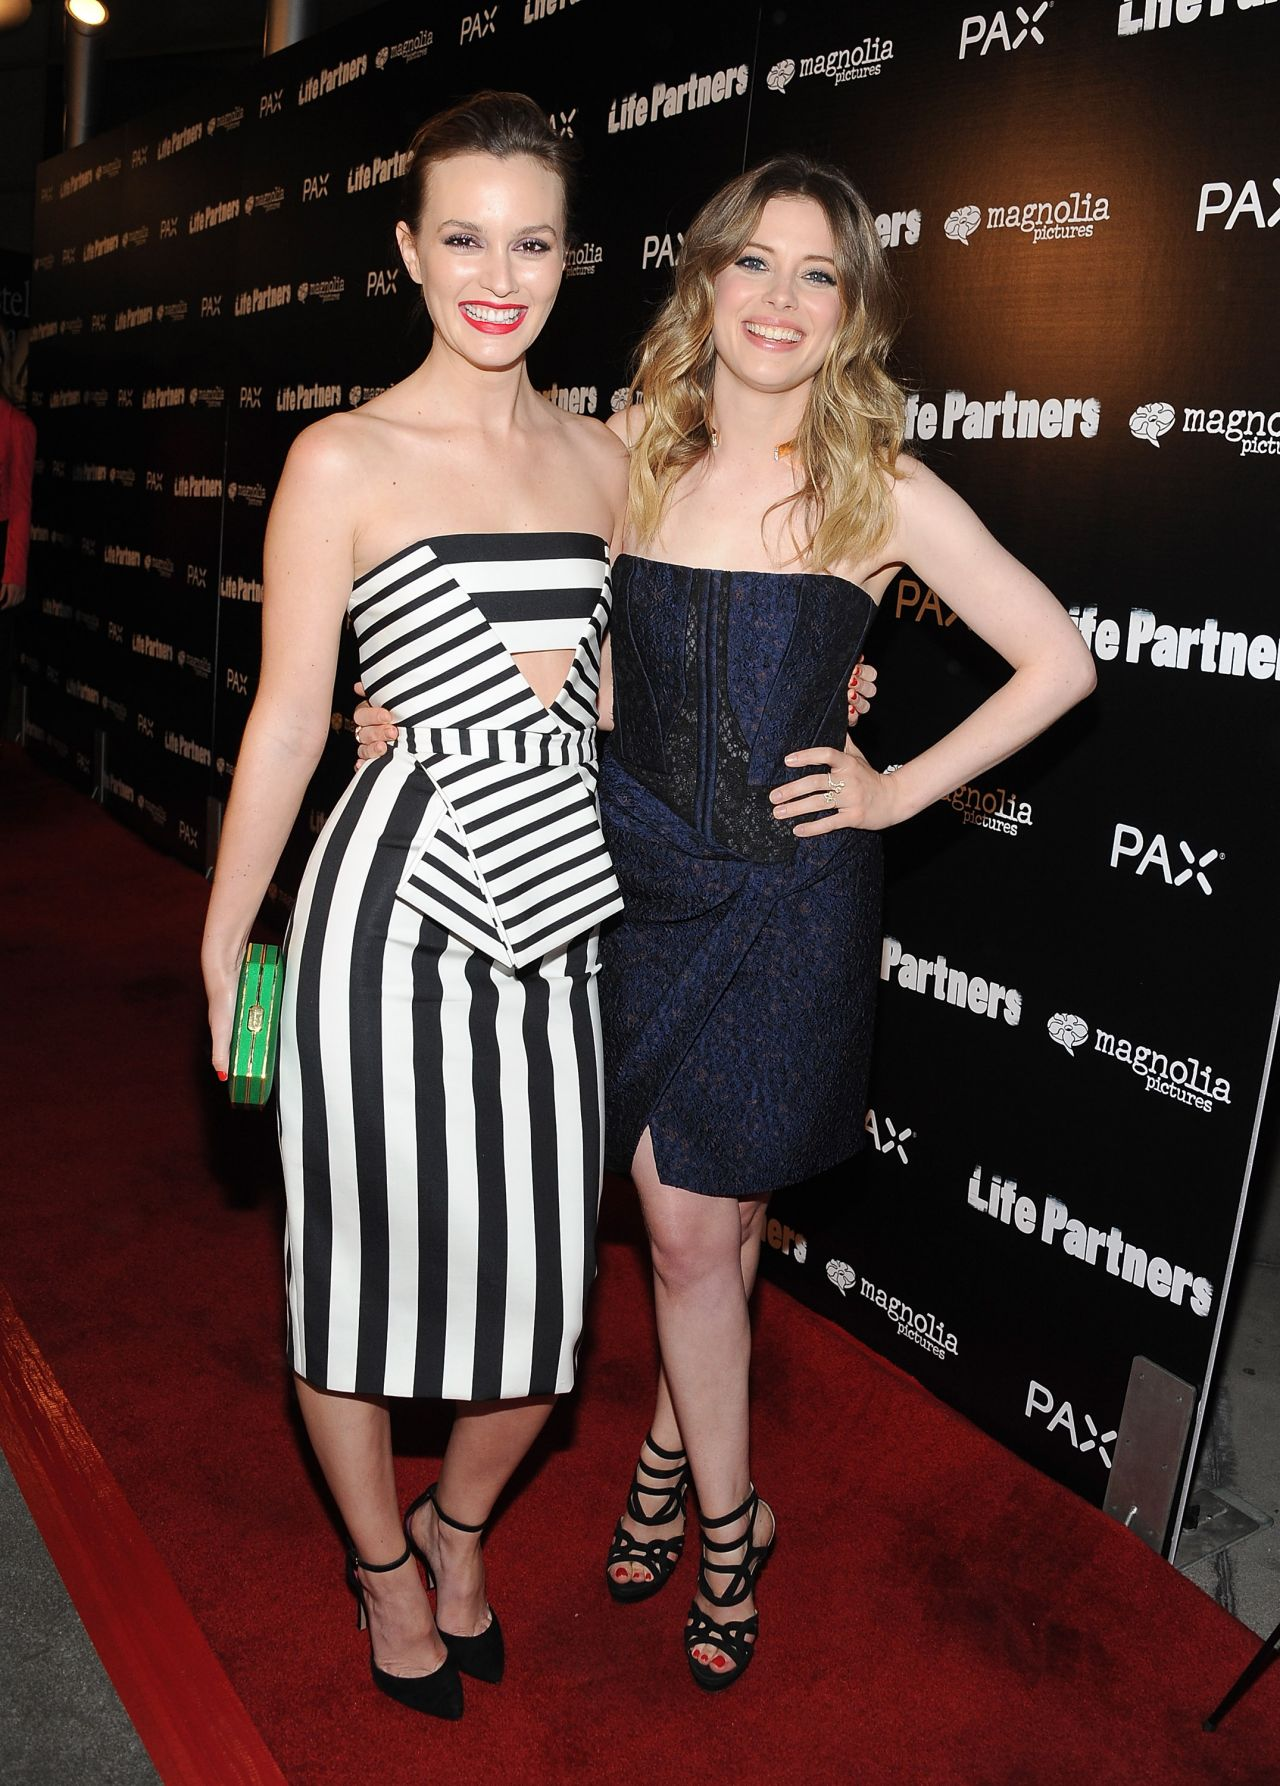 gillian-jacobs-life-partners-premiere-in-hollywood_12